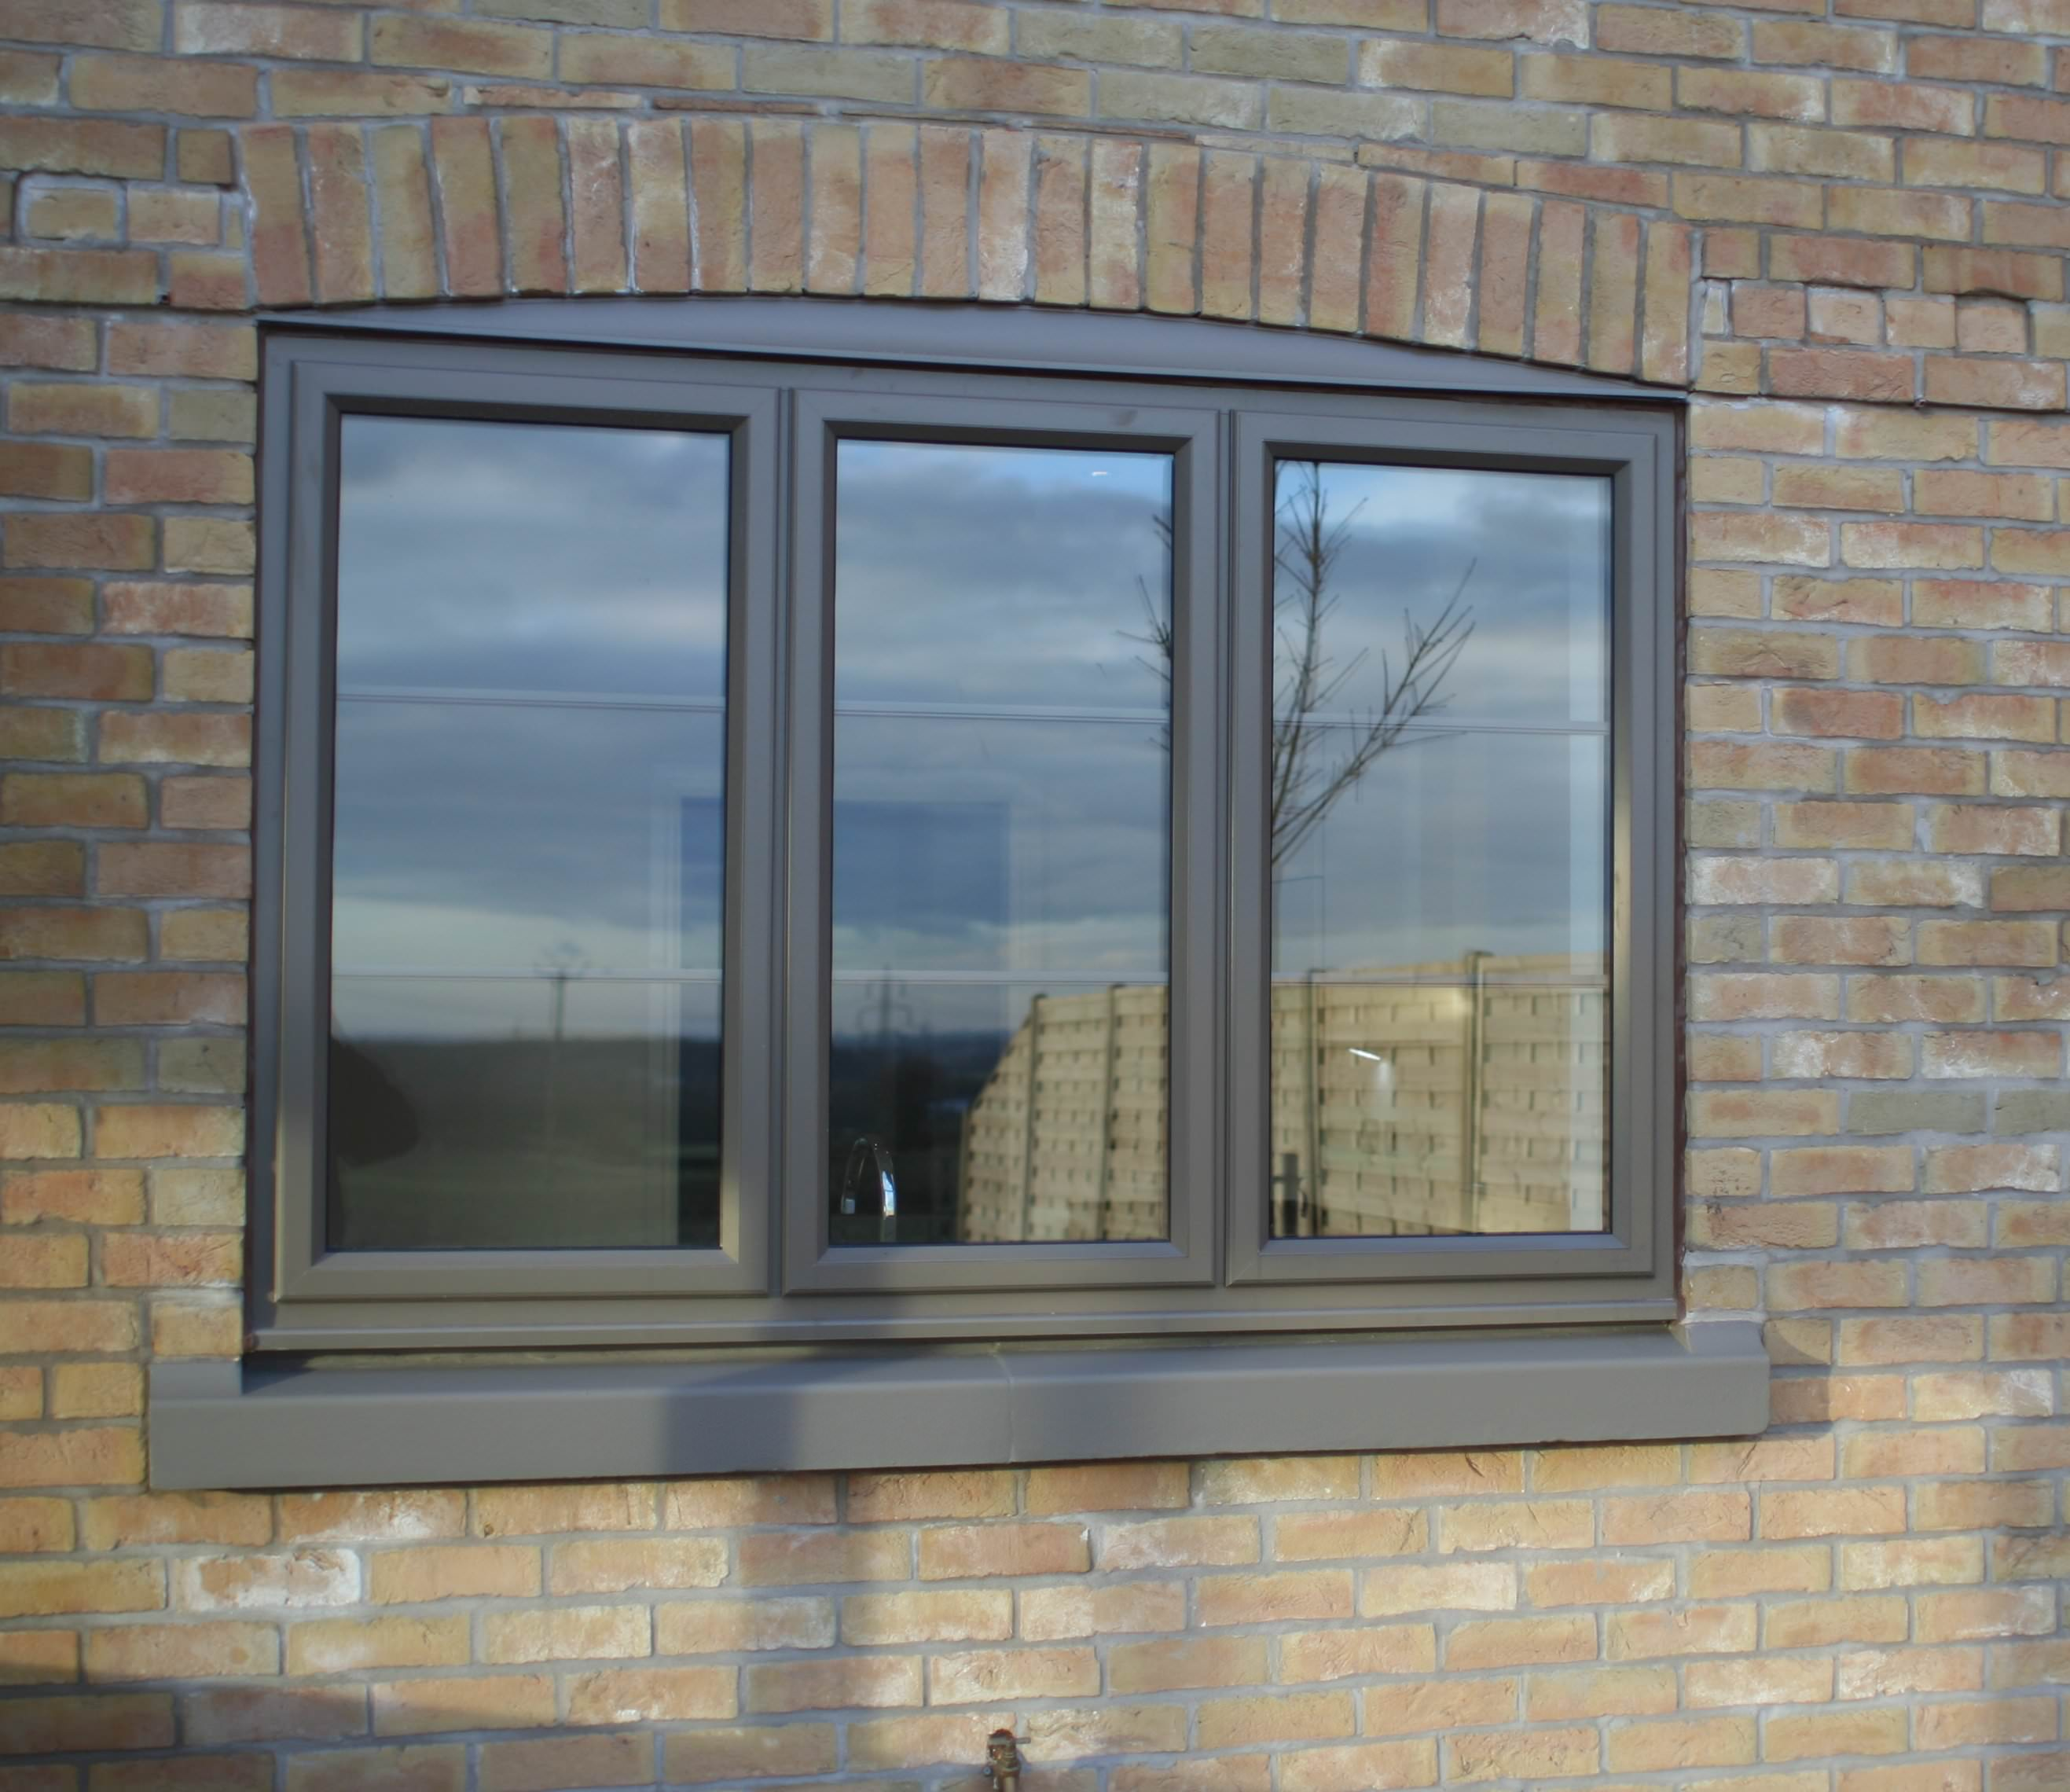 Aluminum Windows And Doors Training : Aluminium windows horsforth prices leeds